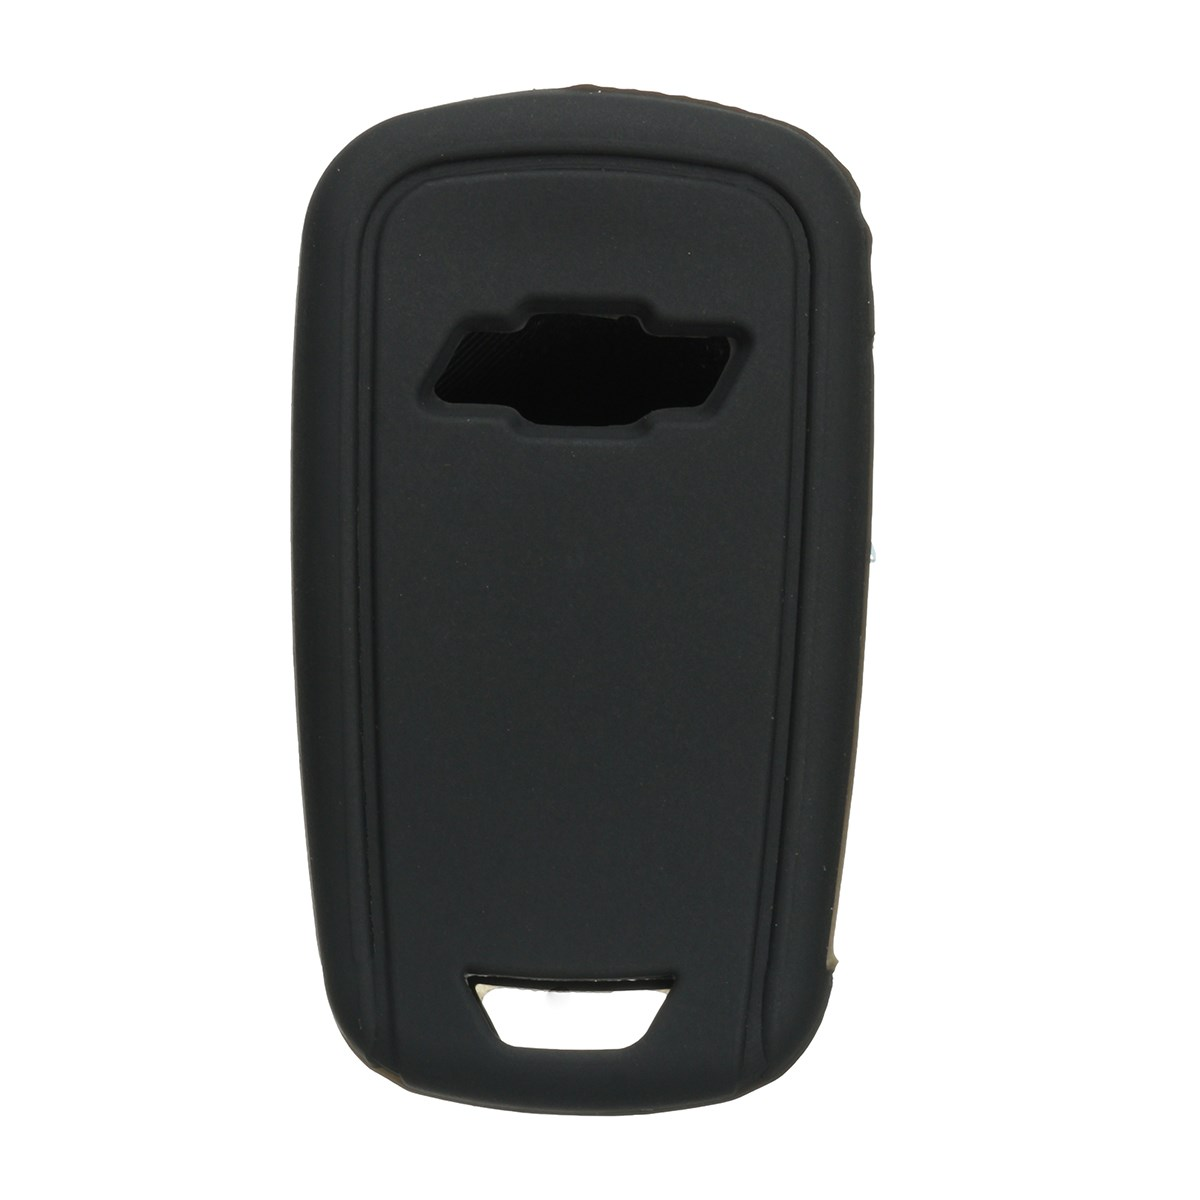 Silicone 4 Button Flip Remote Key Case Fob Cover Holder For Chevrolet /GM /Colored 66.5mm x 38mm x 17.5mm